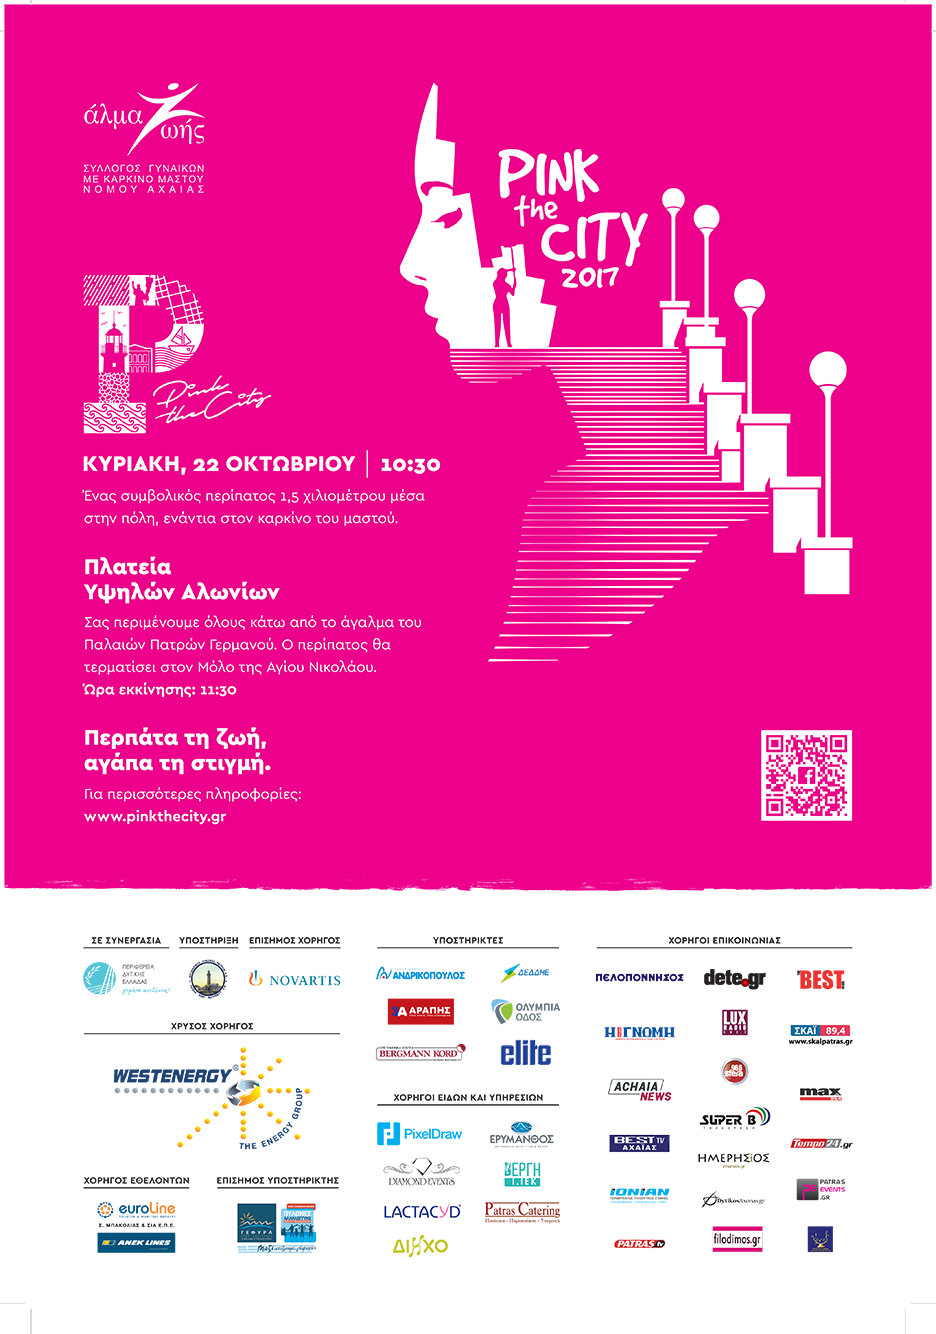 https://pinkthecity.gr/wp-content/uploads/2018/06/final-poster-2017.png